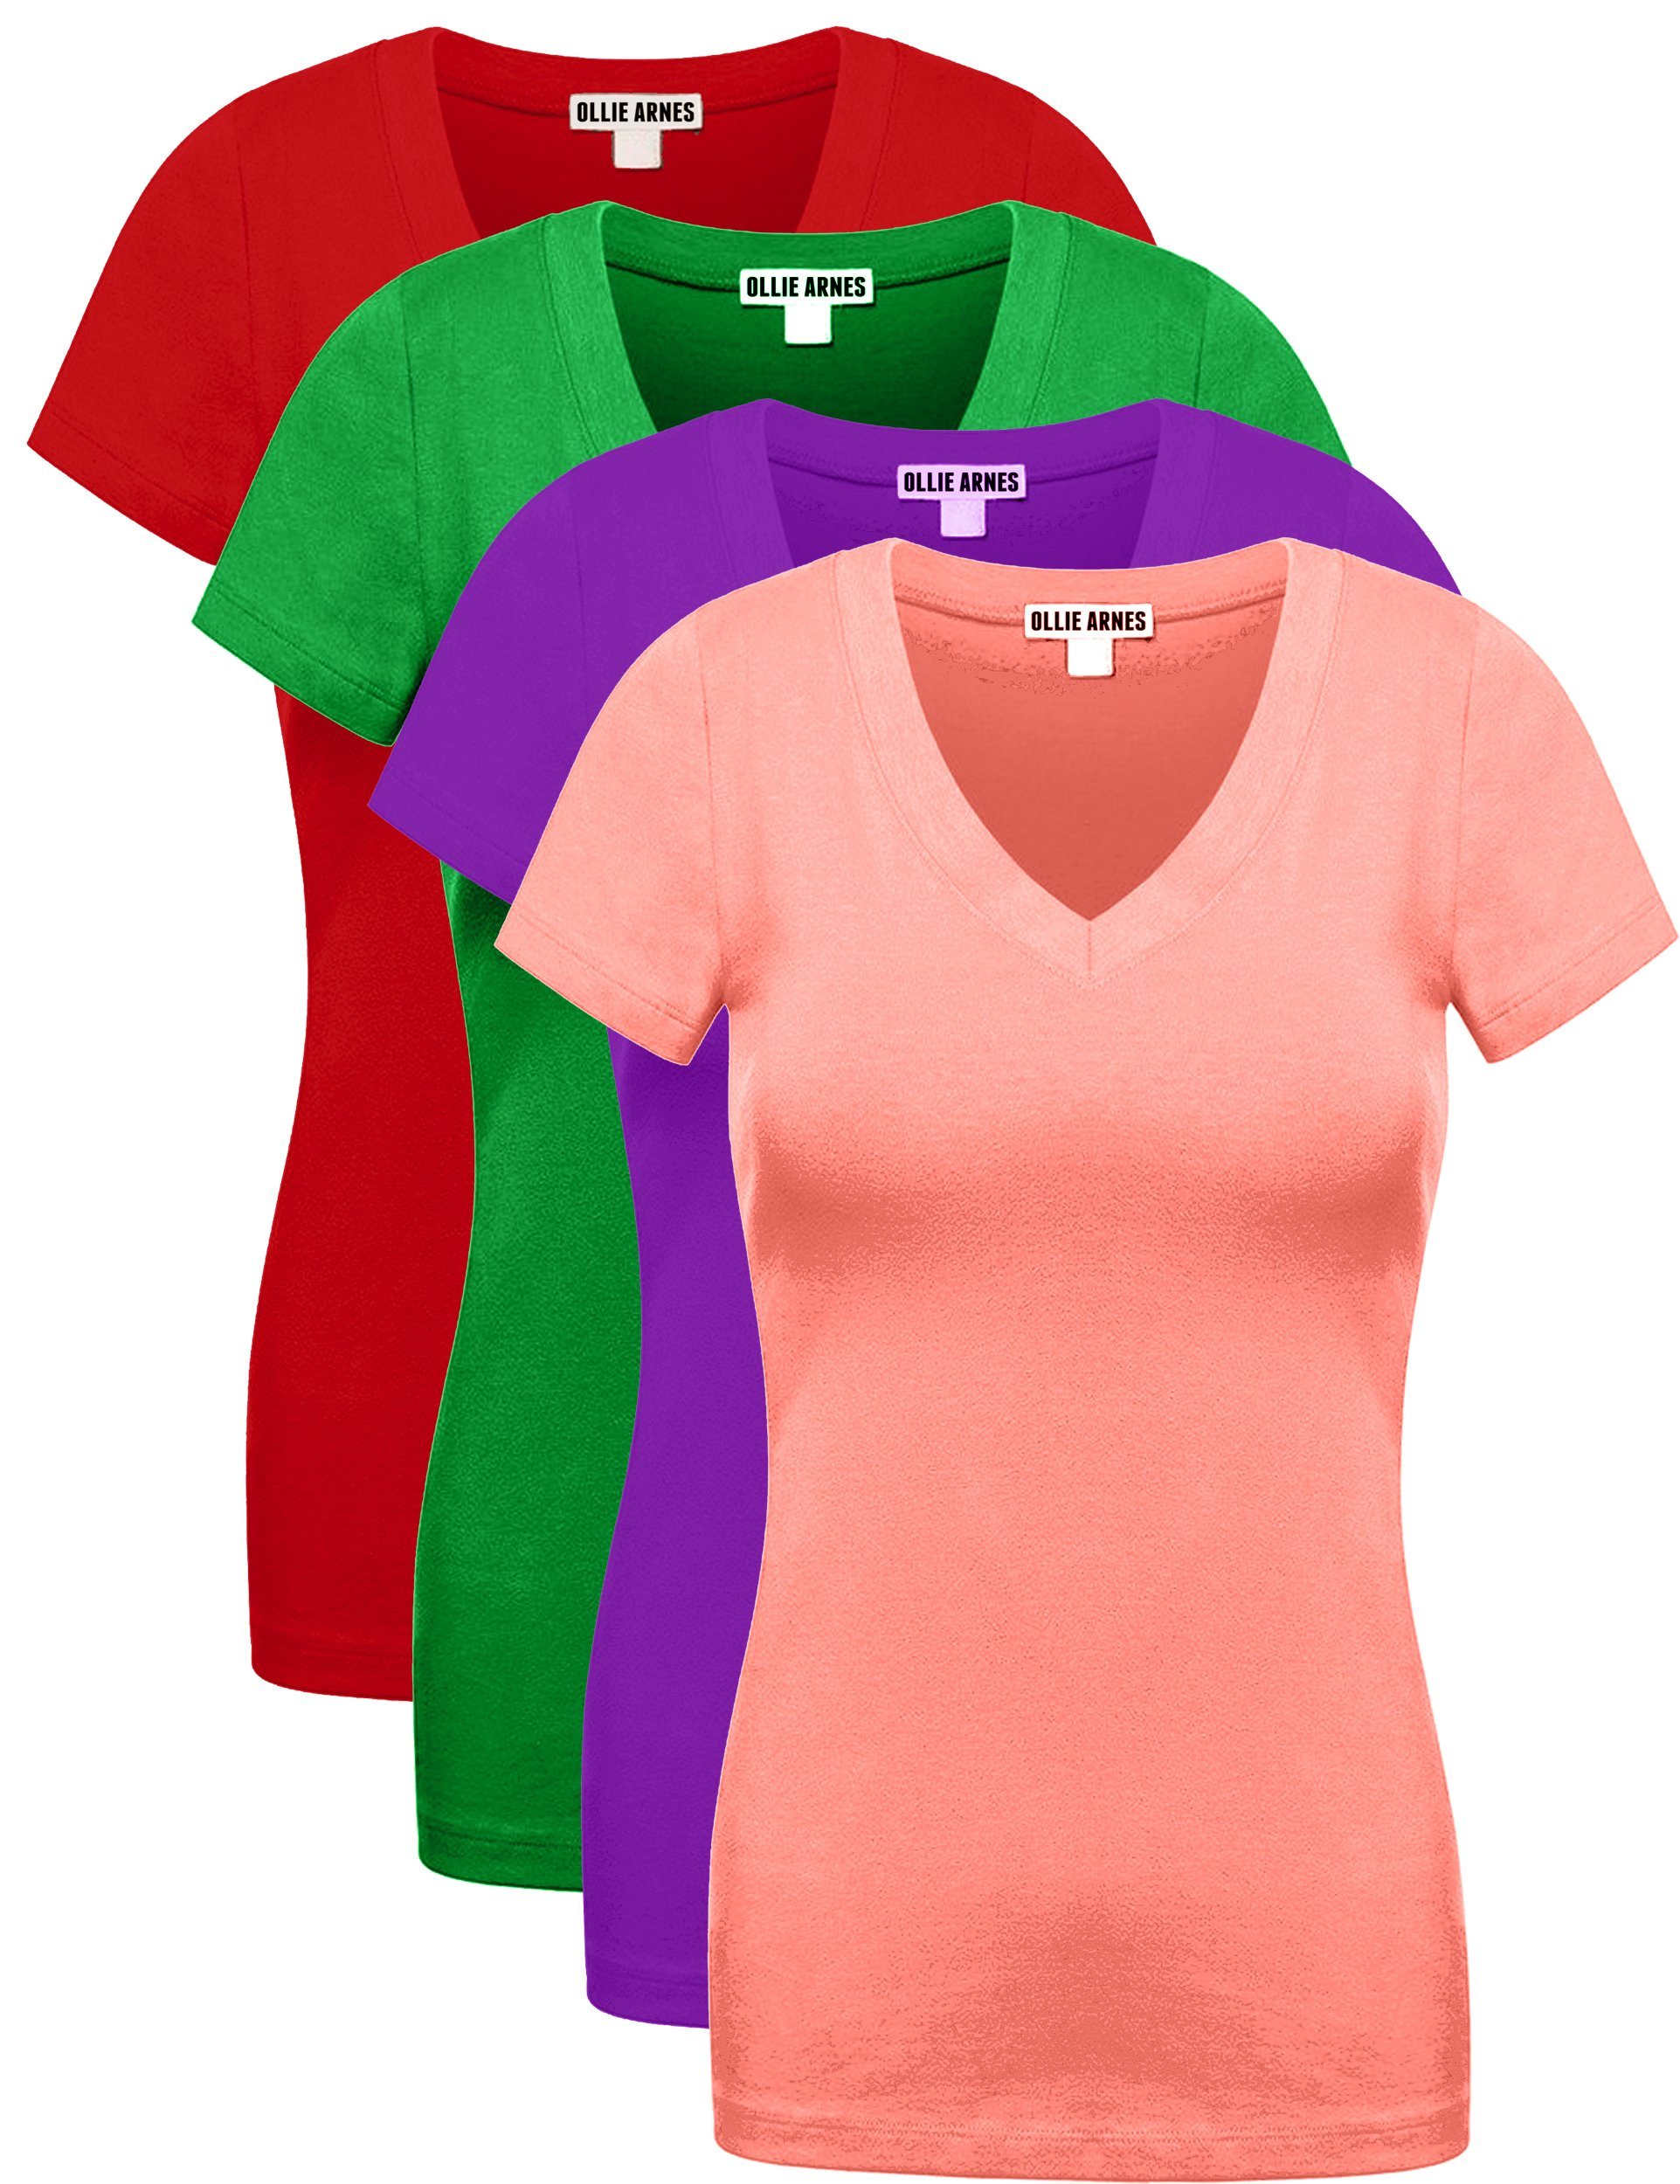 Ollie Arnes Women's 4 Pack Essential Cotton Short Sleeves Solid V-Neck T-Shirts COR_PURP_KGRN_RED S